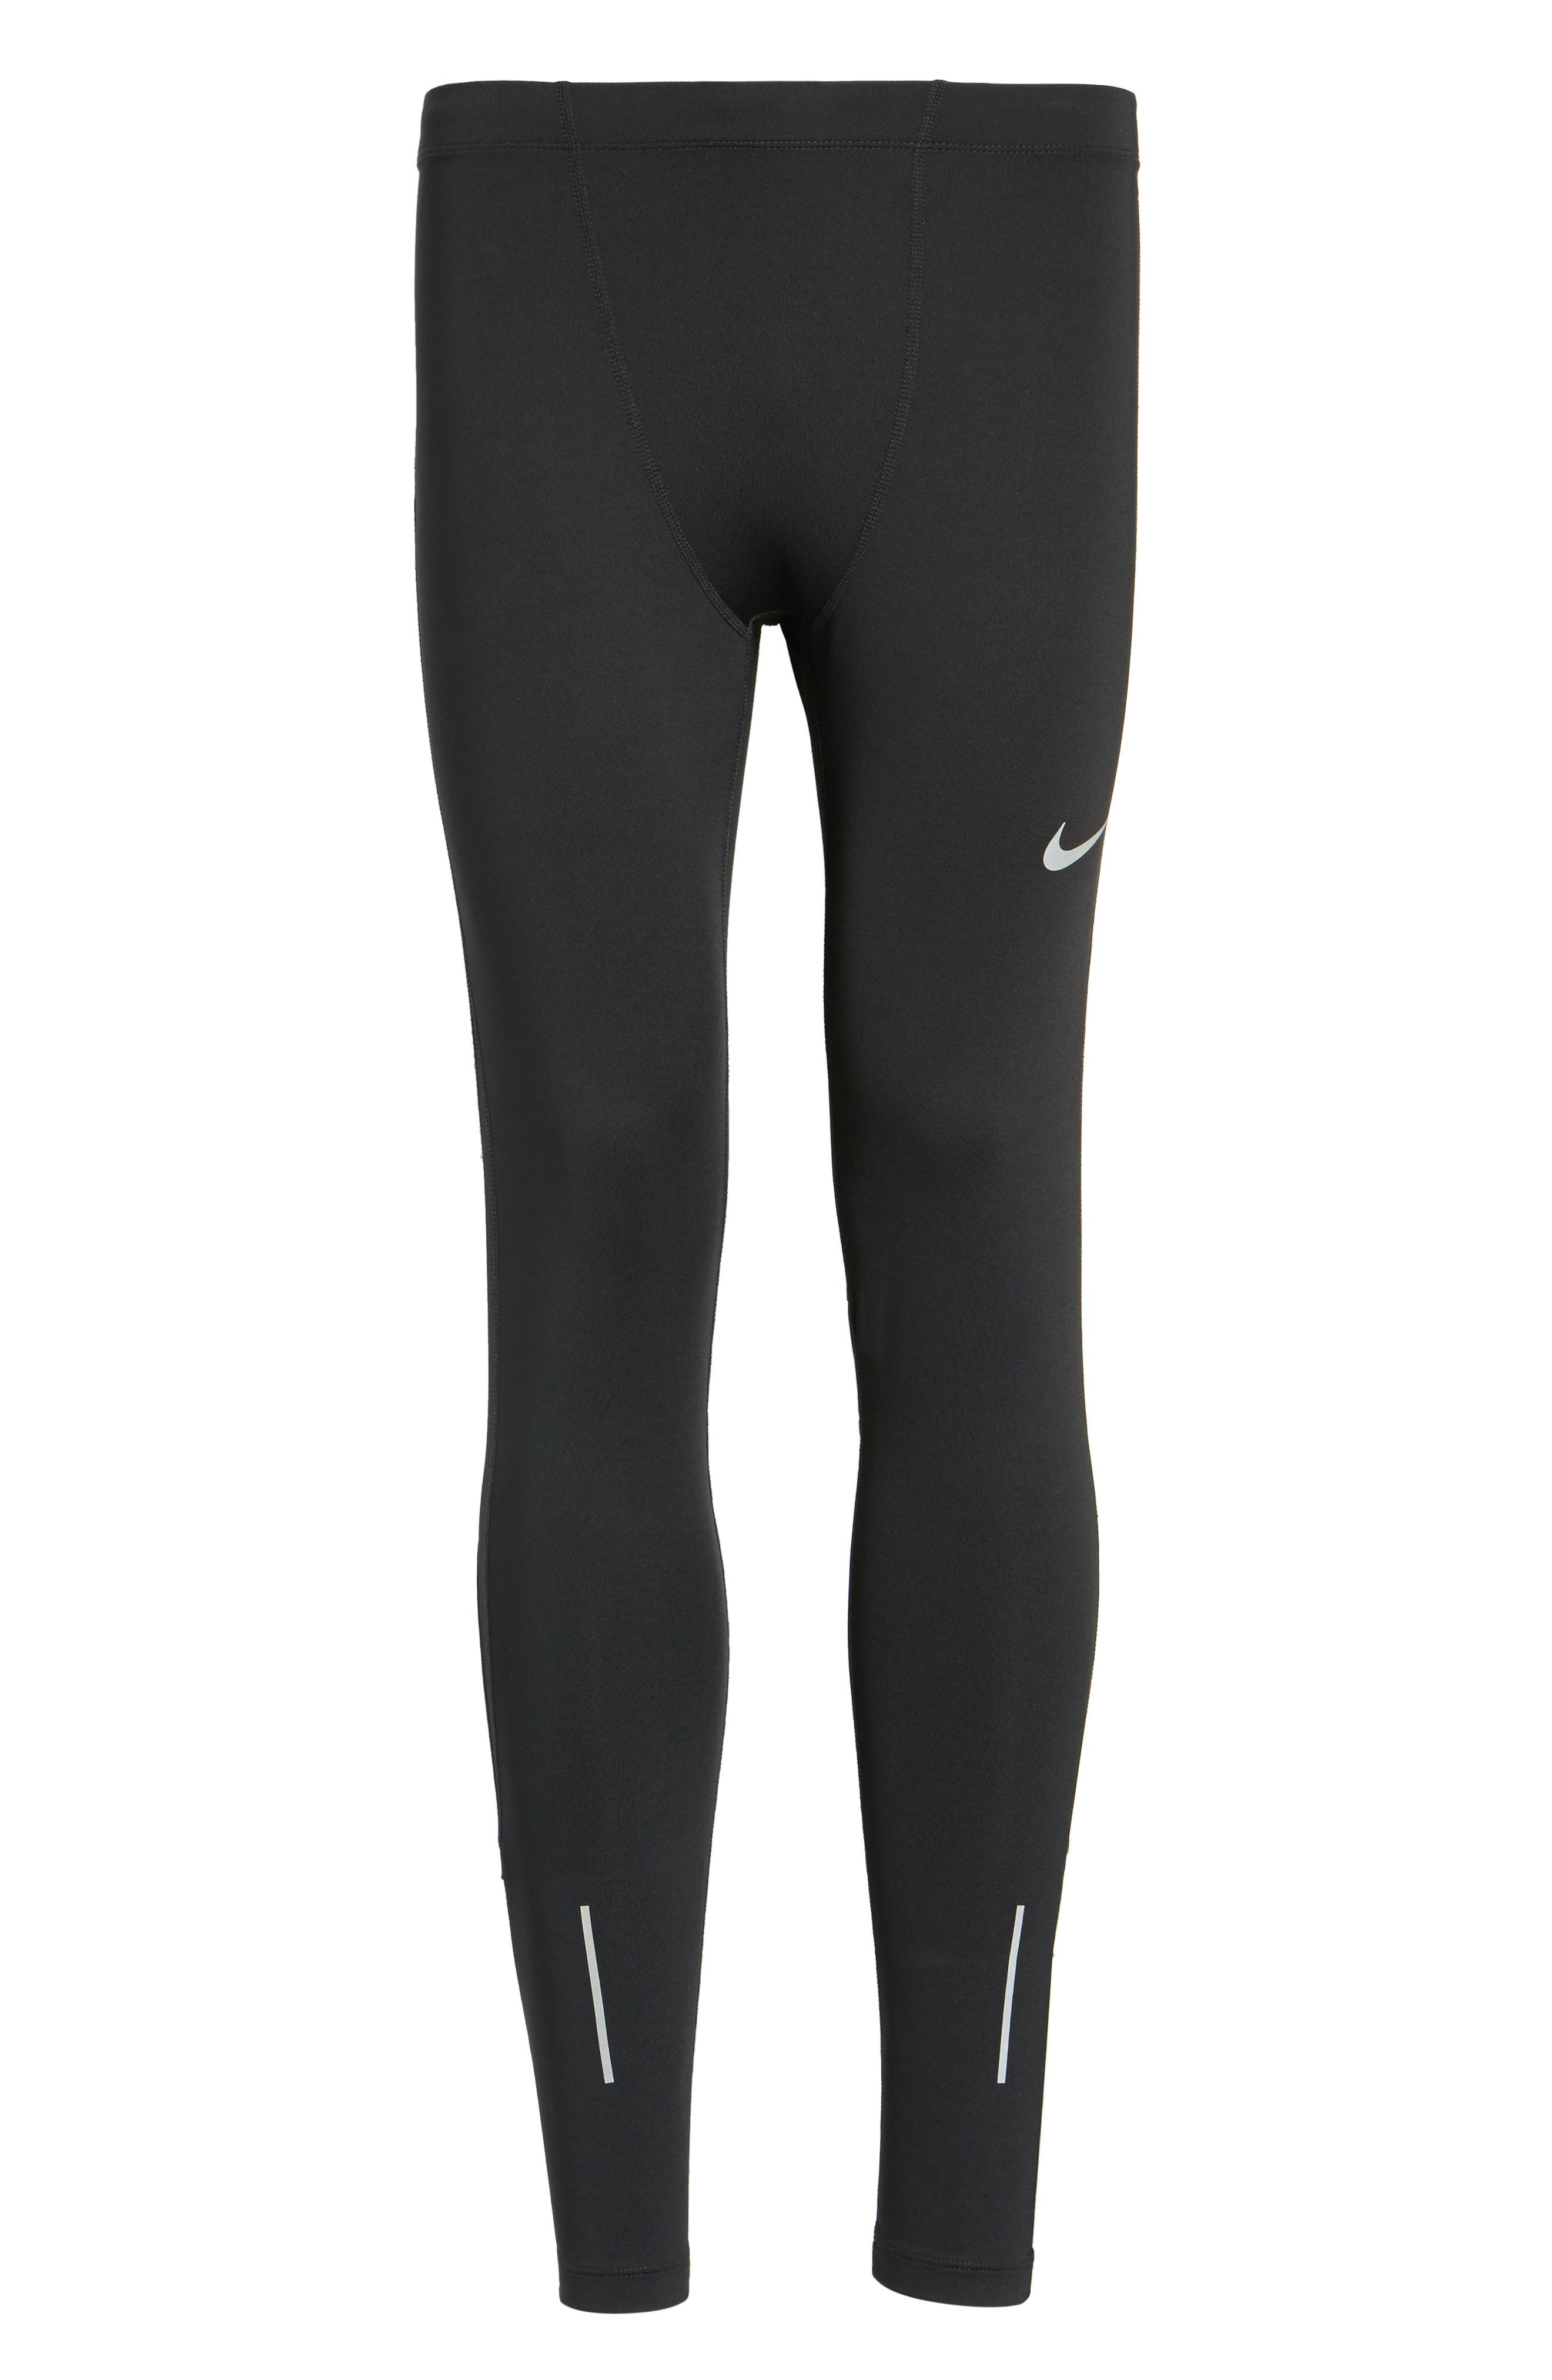 Therma Dry Running Tights,                             Alternate thumbnail 6, color,                             Black